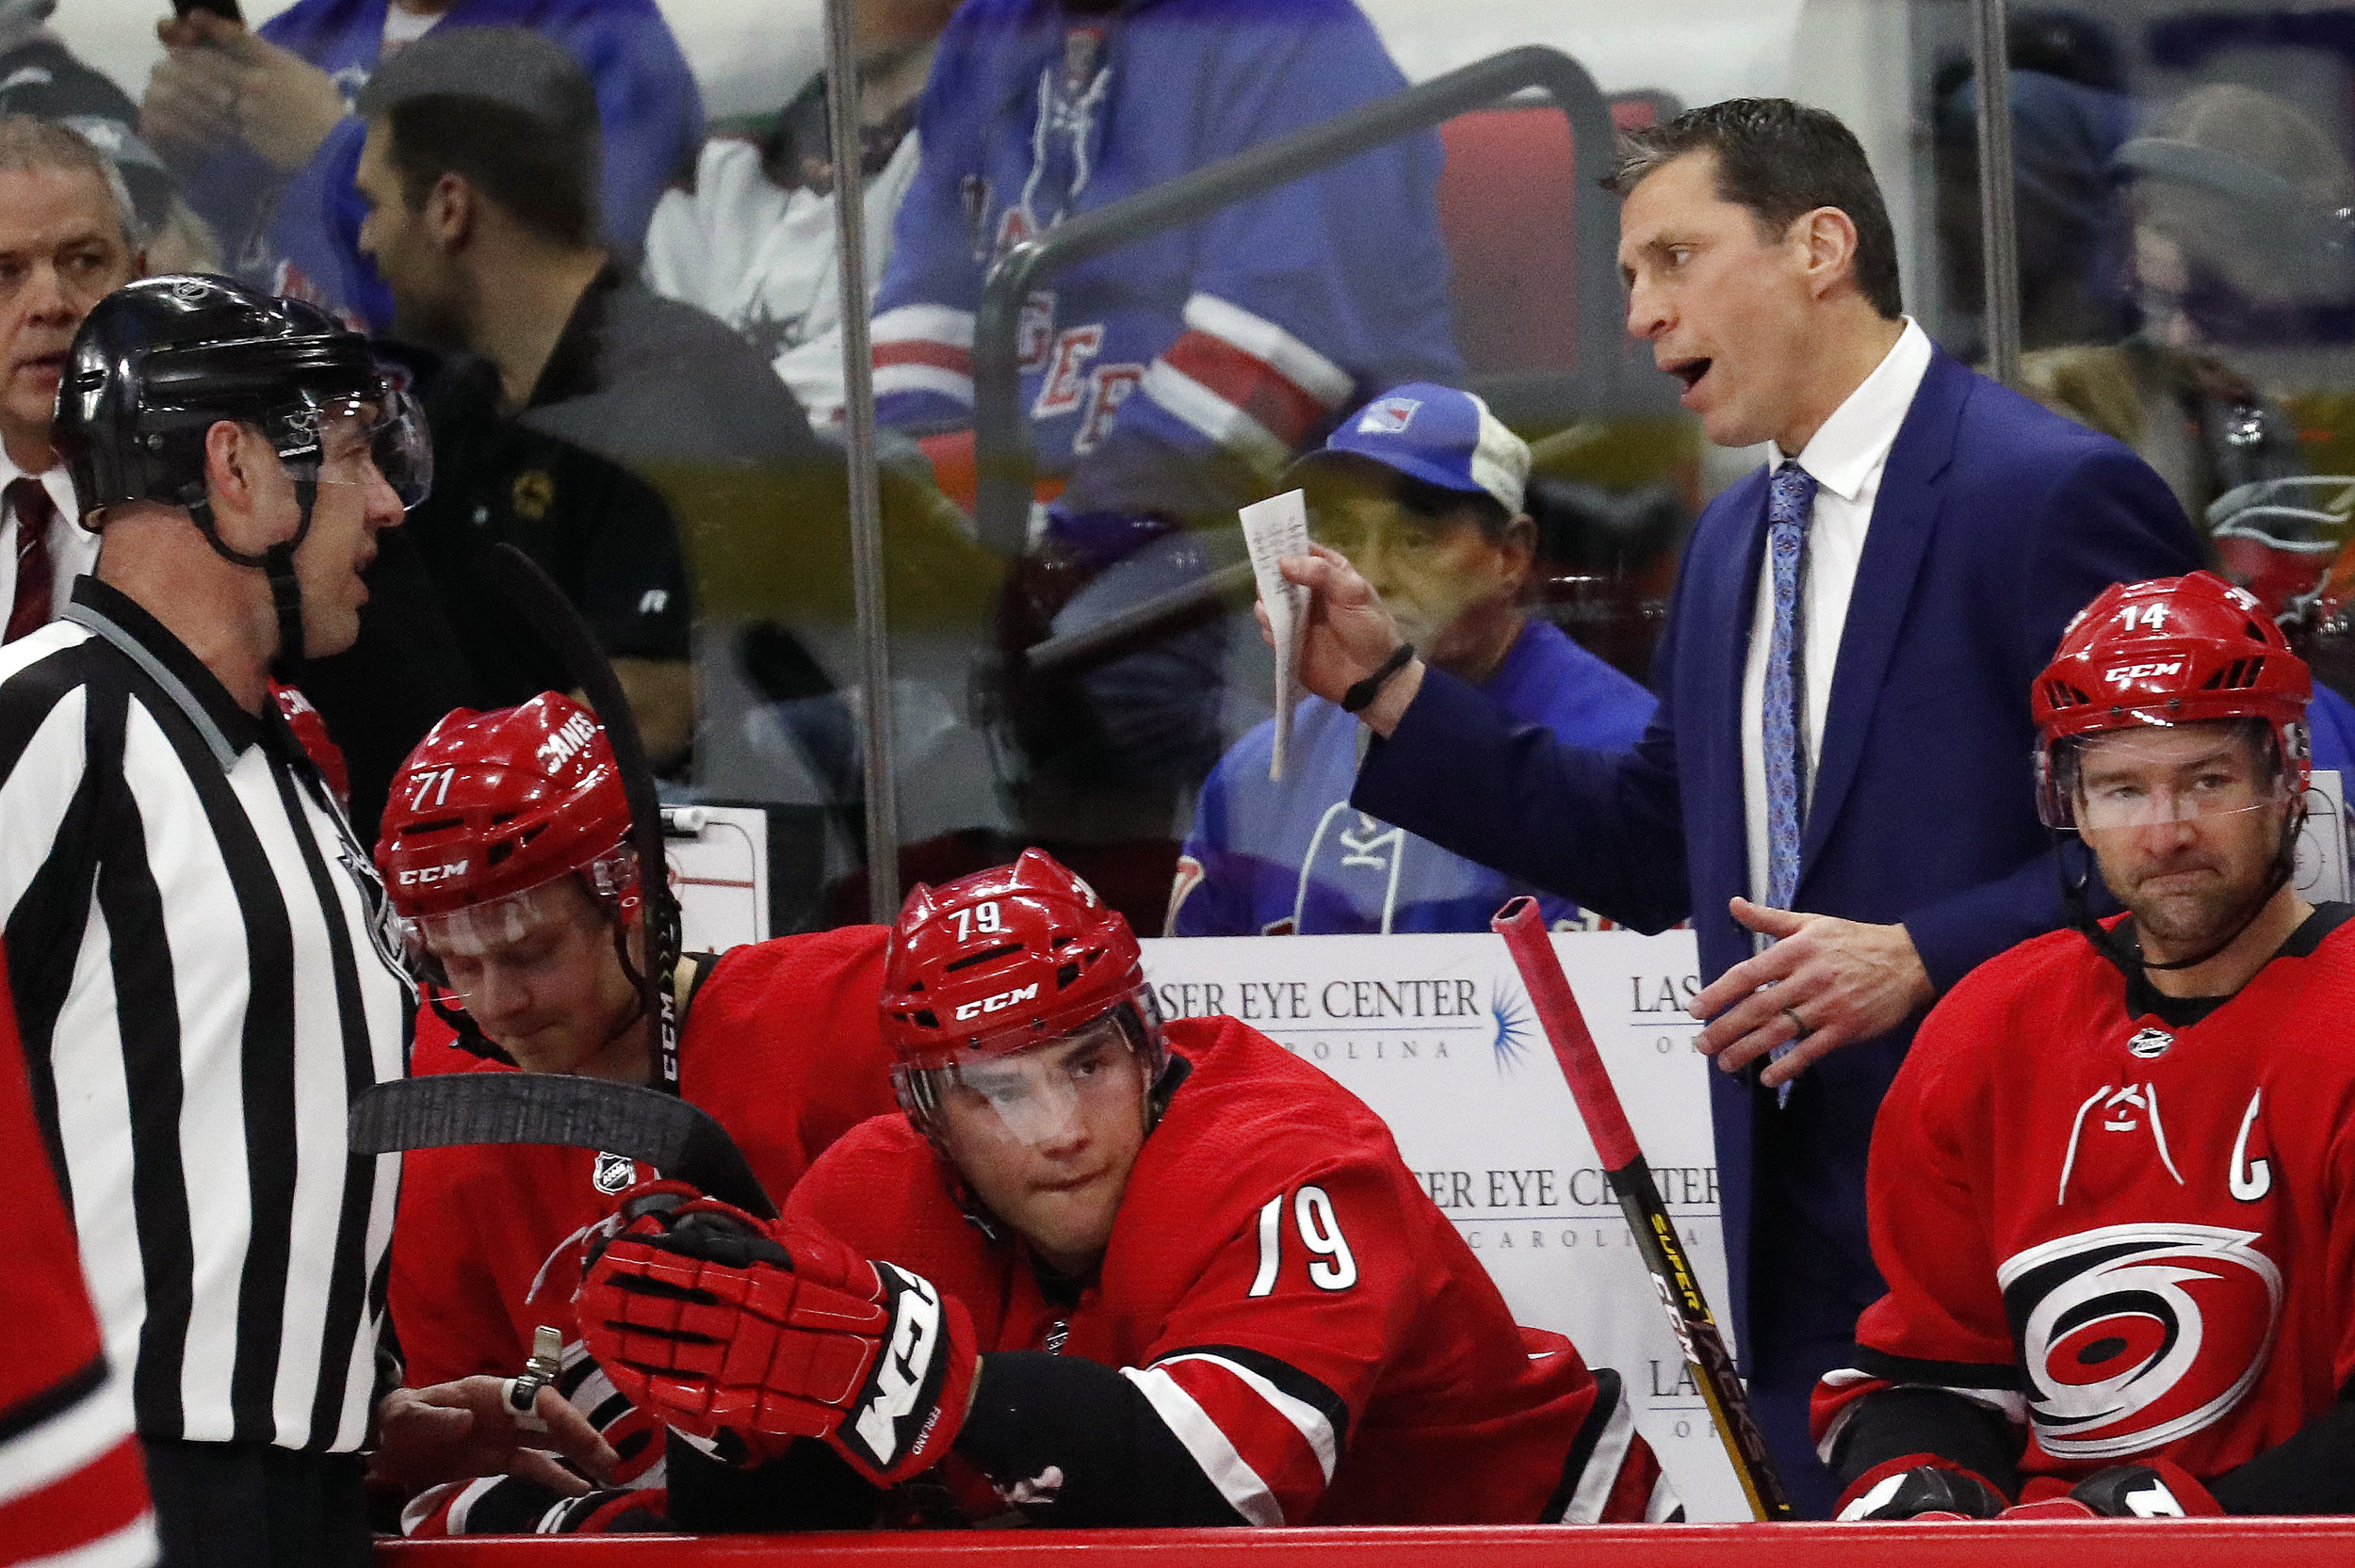 Carolina Hurricanes' head coach Rod Brind'Amour talks with an official during a break in the first period of an NHL hockey game against the New York Rangers in Raleigh, N.C., Tuesday, Feb. 19, 2019. (AP Photo/Chris Seward)